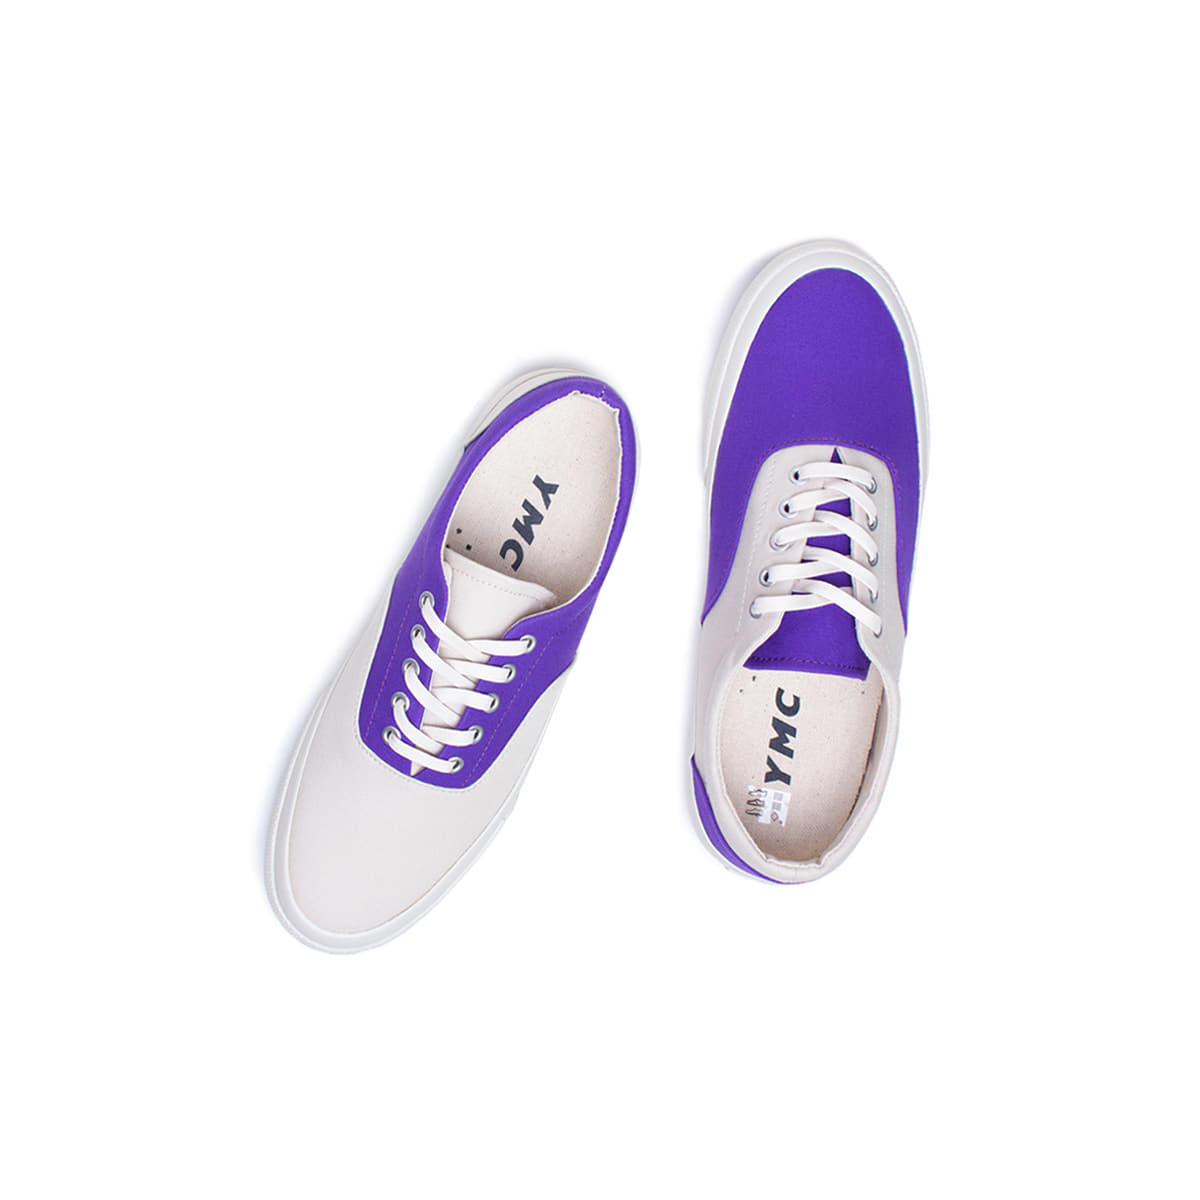 [YMC] 2 TONE TRAINER 'CREAM / PURPLE'